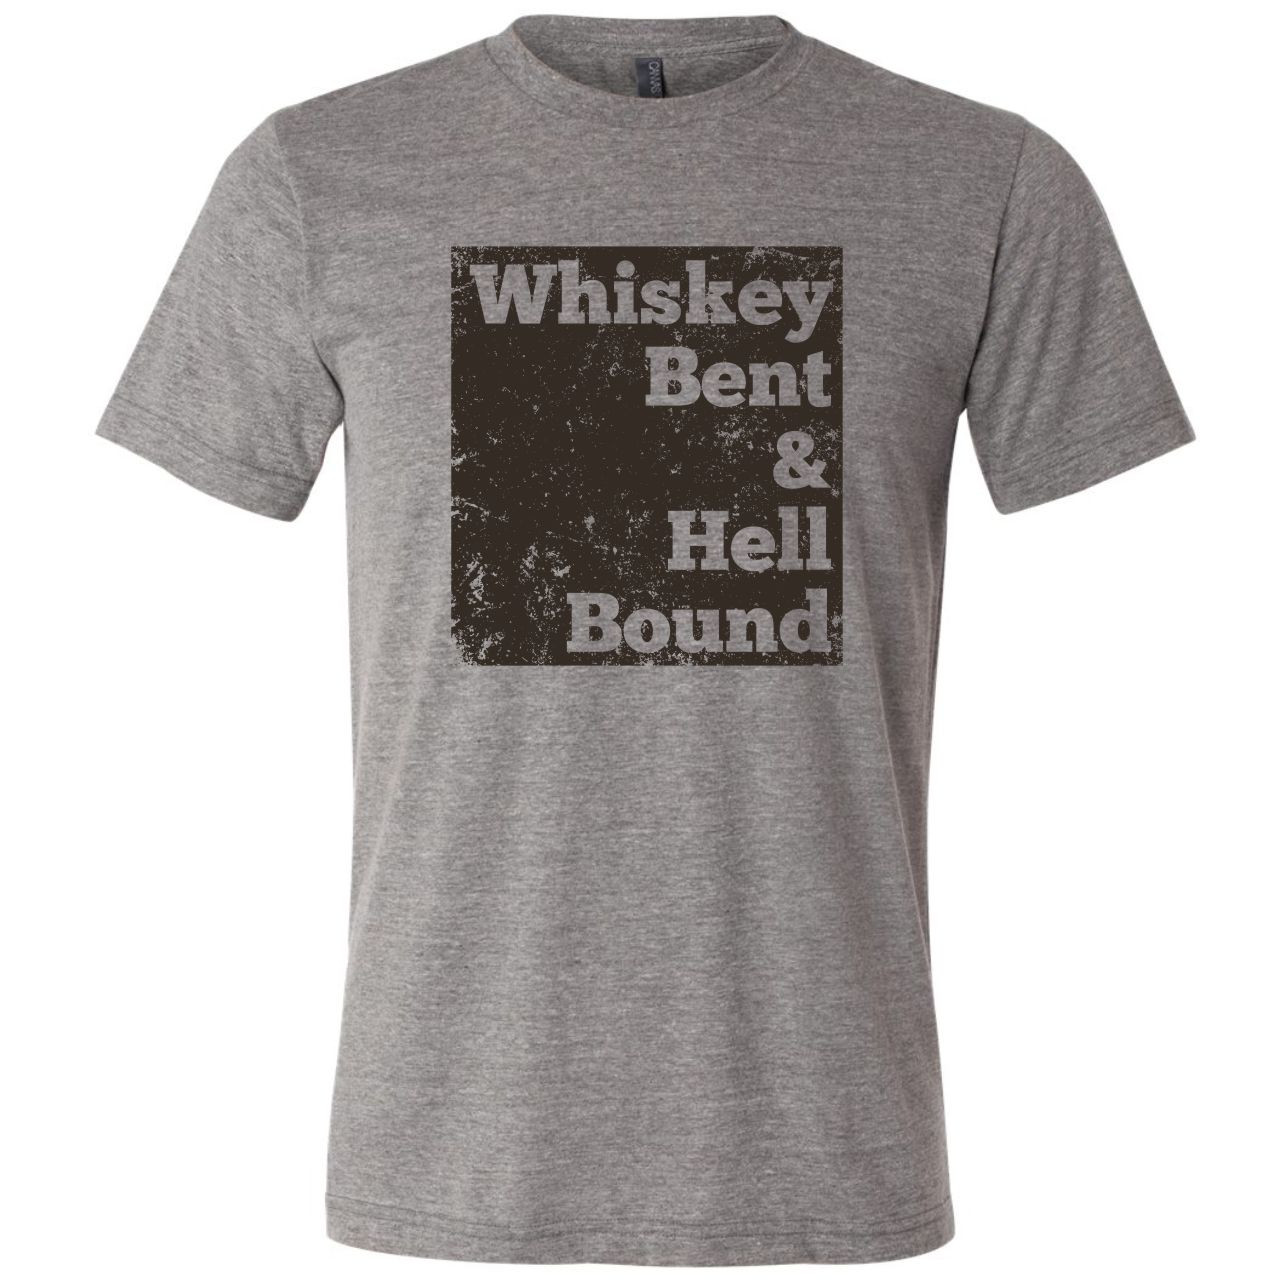 0ad6a33e Whiskey Bent and Hell Bound - Unisex Tee